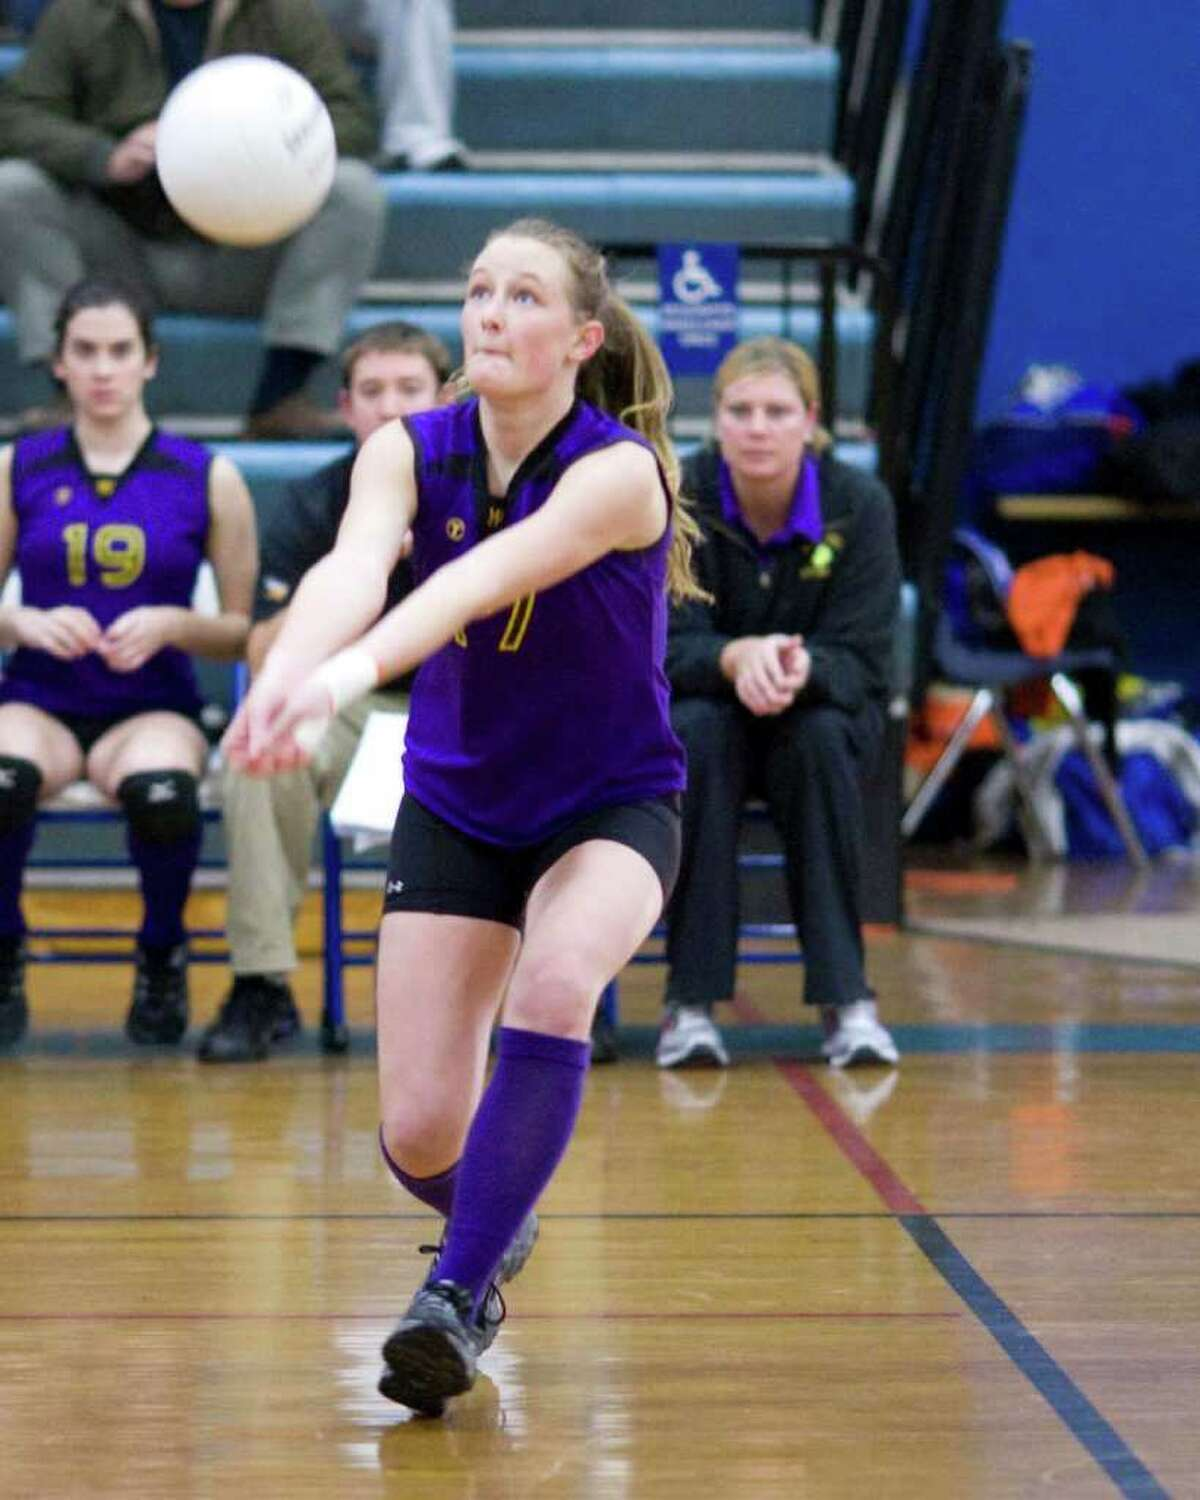 Westhill's Anne Hawthorn sets a shot during the Vikings' first round Class LL tournament match against Danbury Monday at Danbury High.